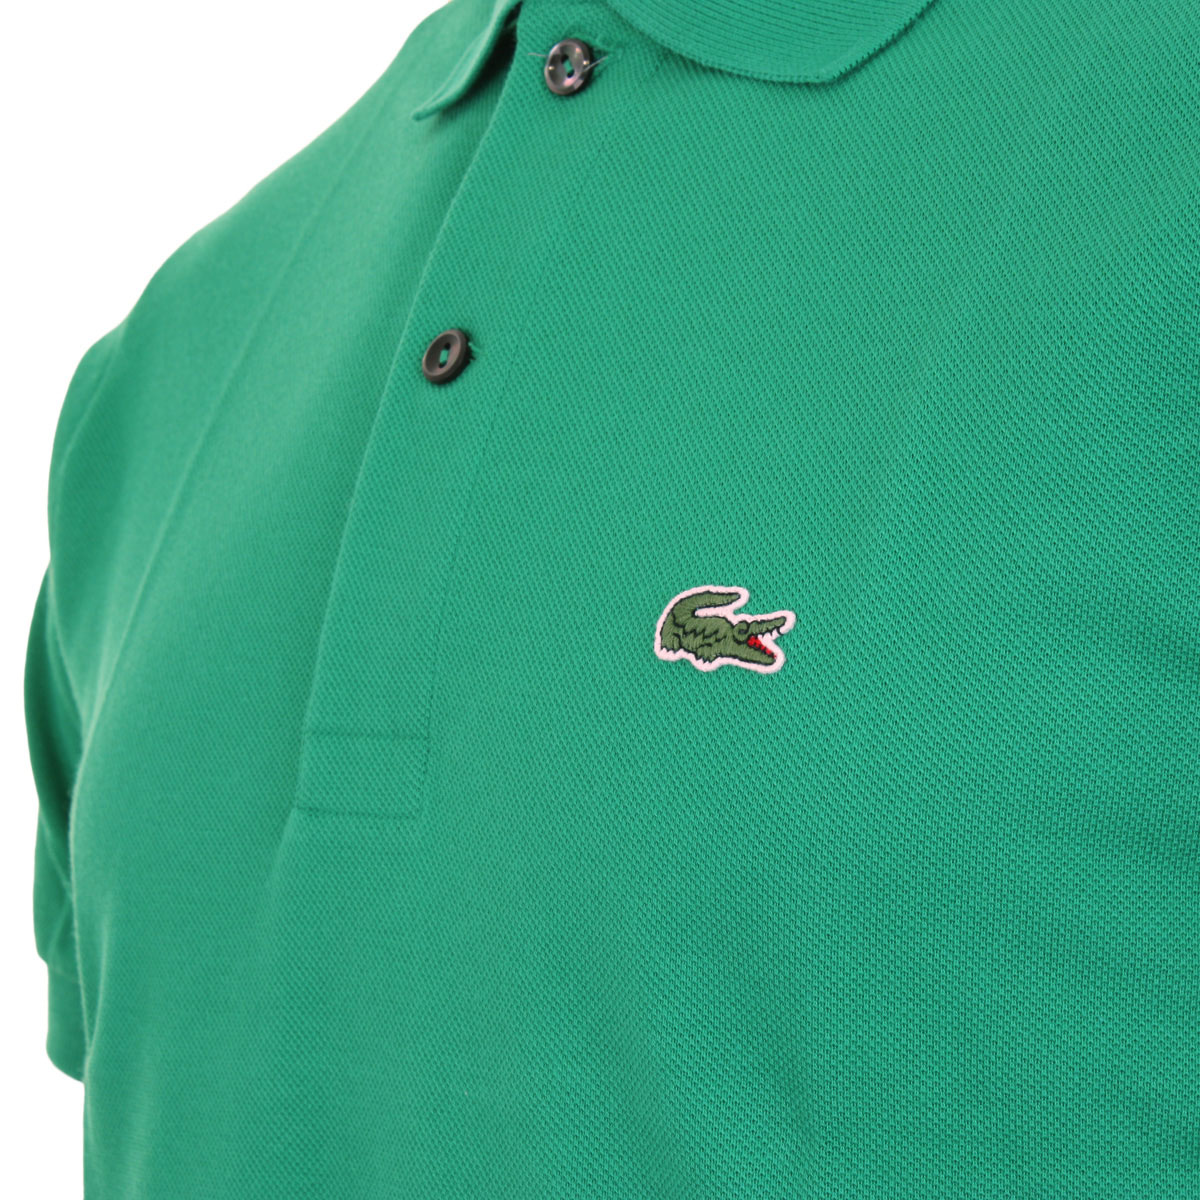 Lacoste-Mens-Classic-Cotton-L1212-Short-Sleeve-Polo-Shirt-31-OFF-RRP thumbnail 28